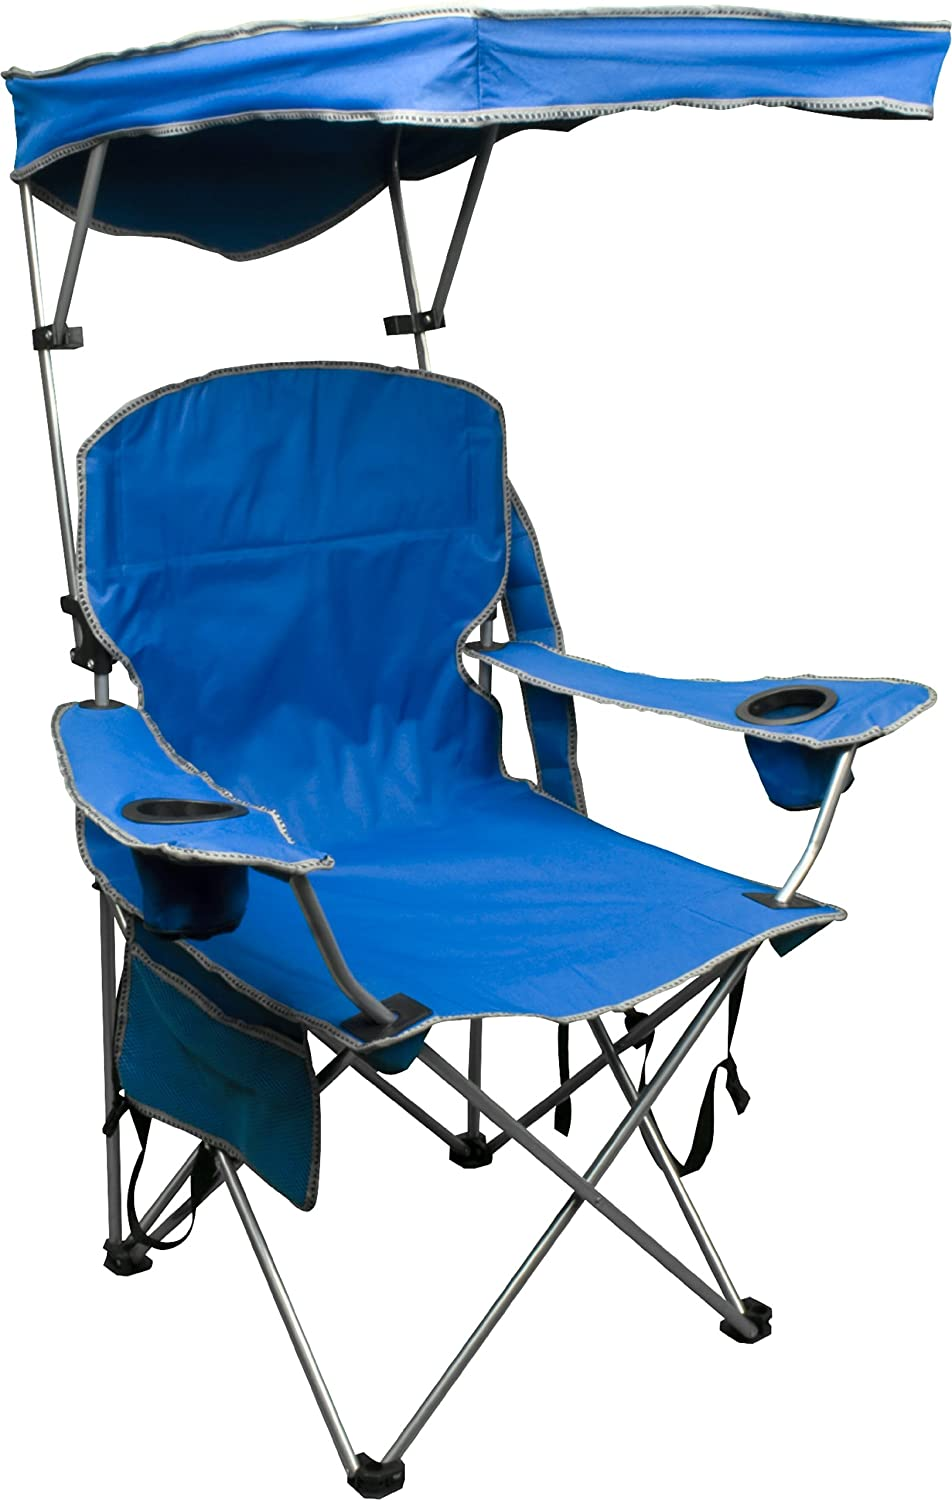 Camping chairs with umbrella - Amazon Com Quik Shade Adjustable Canopy Folding Camp Chair Royal Blue Folding Sports Chairs Sports Outdoors